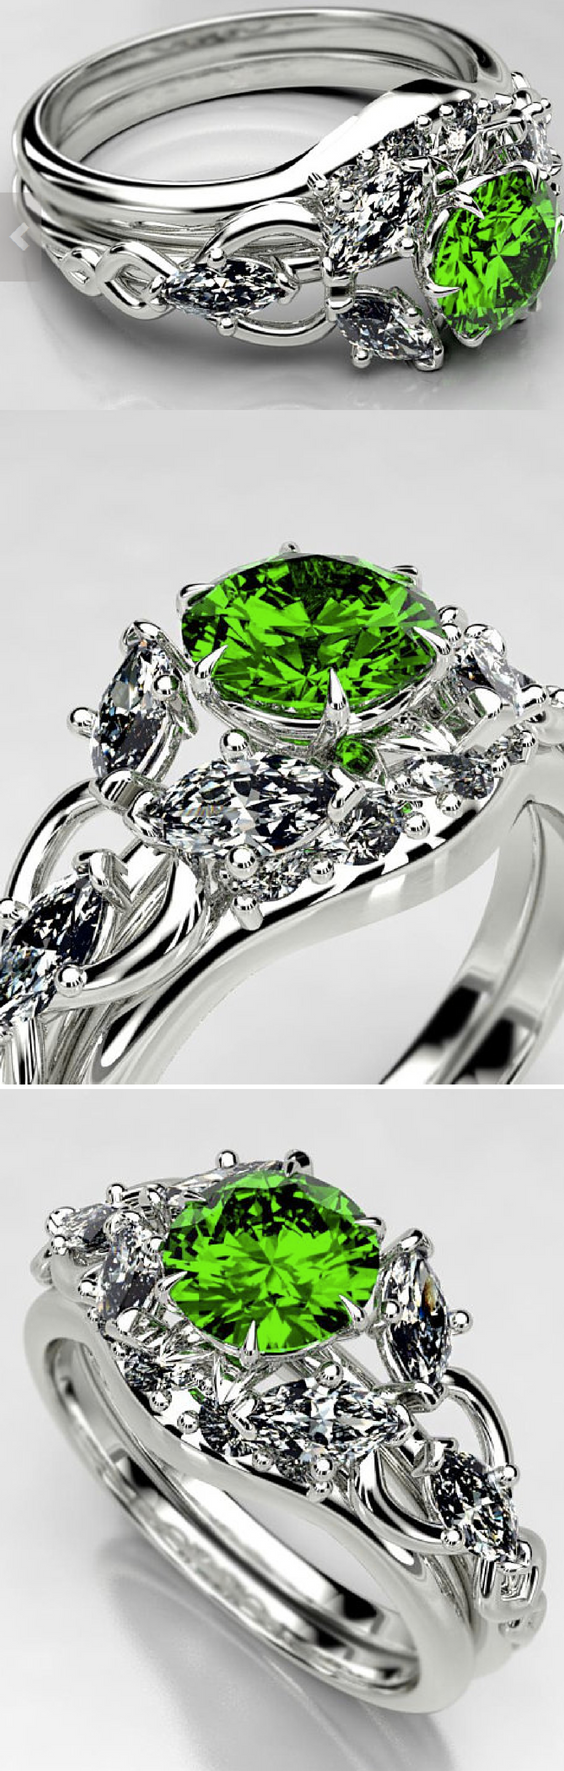 Arwen Lord of The Rings Evening Star Emerald Engagement Ring.png